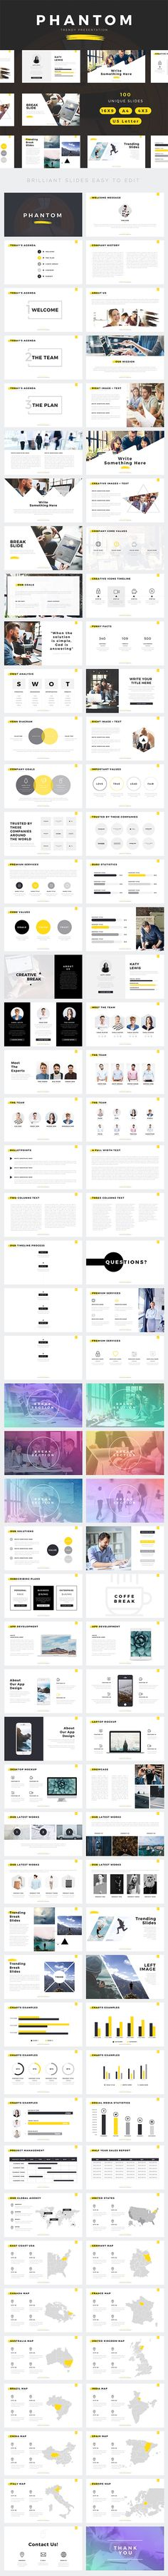 Phantom Modern Powerpoint Template